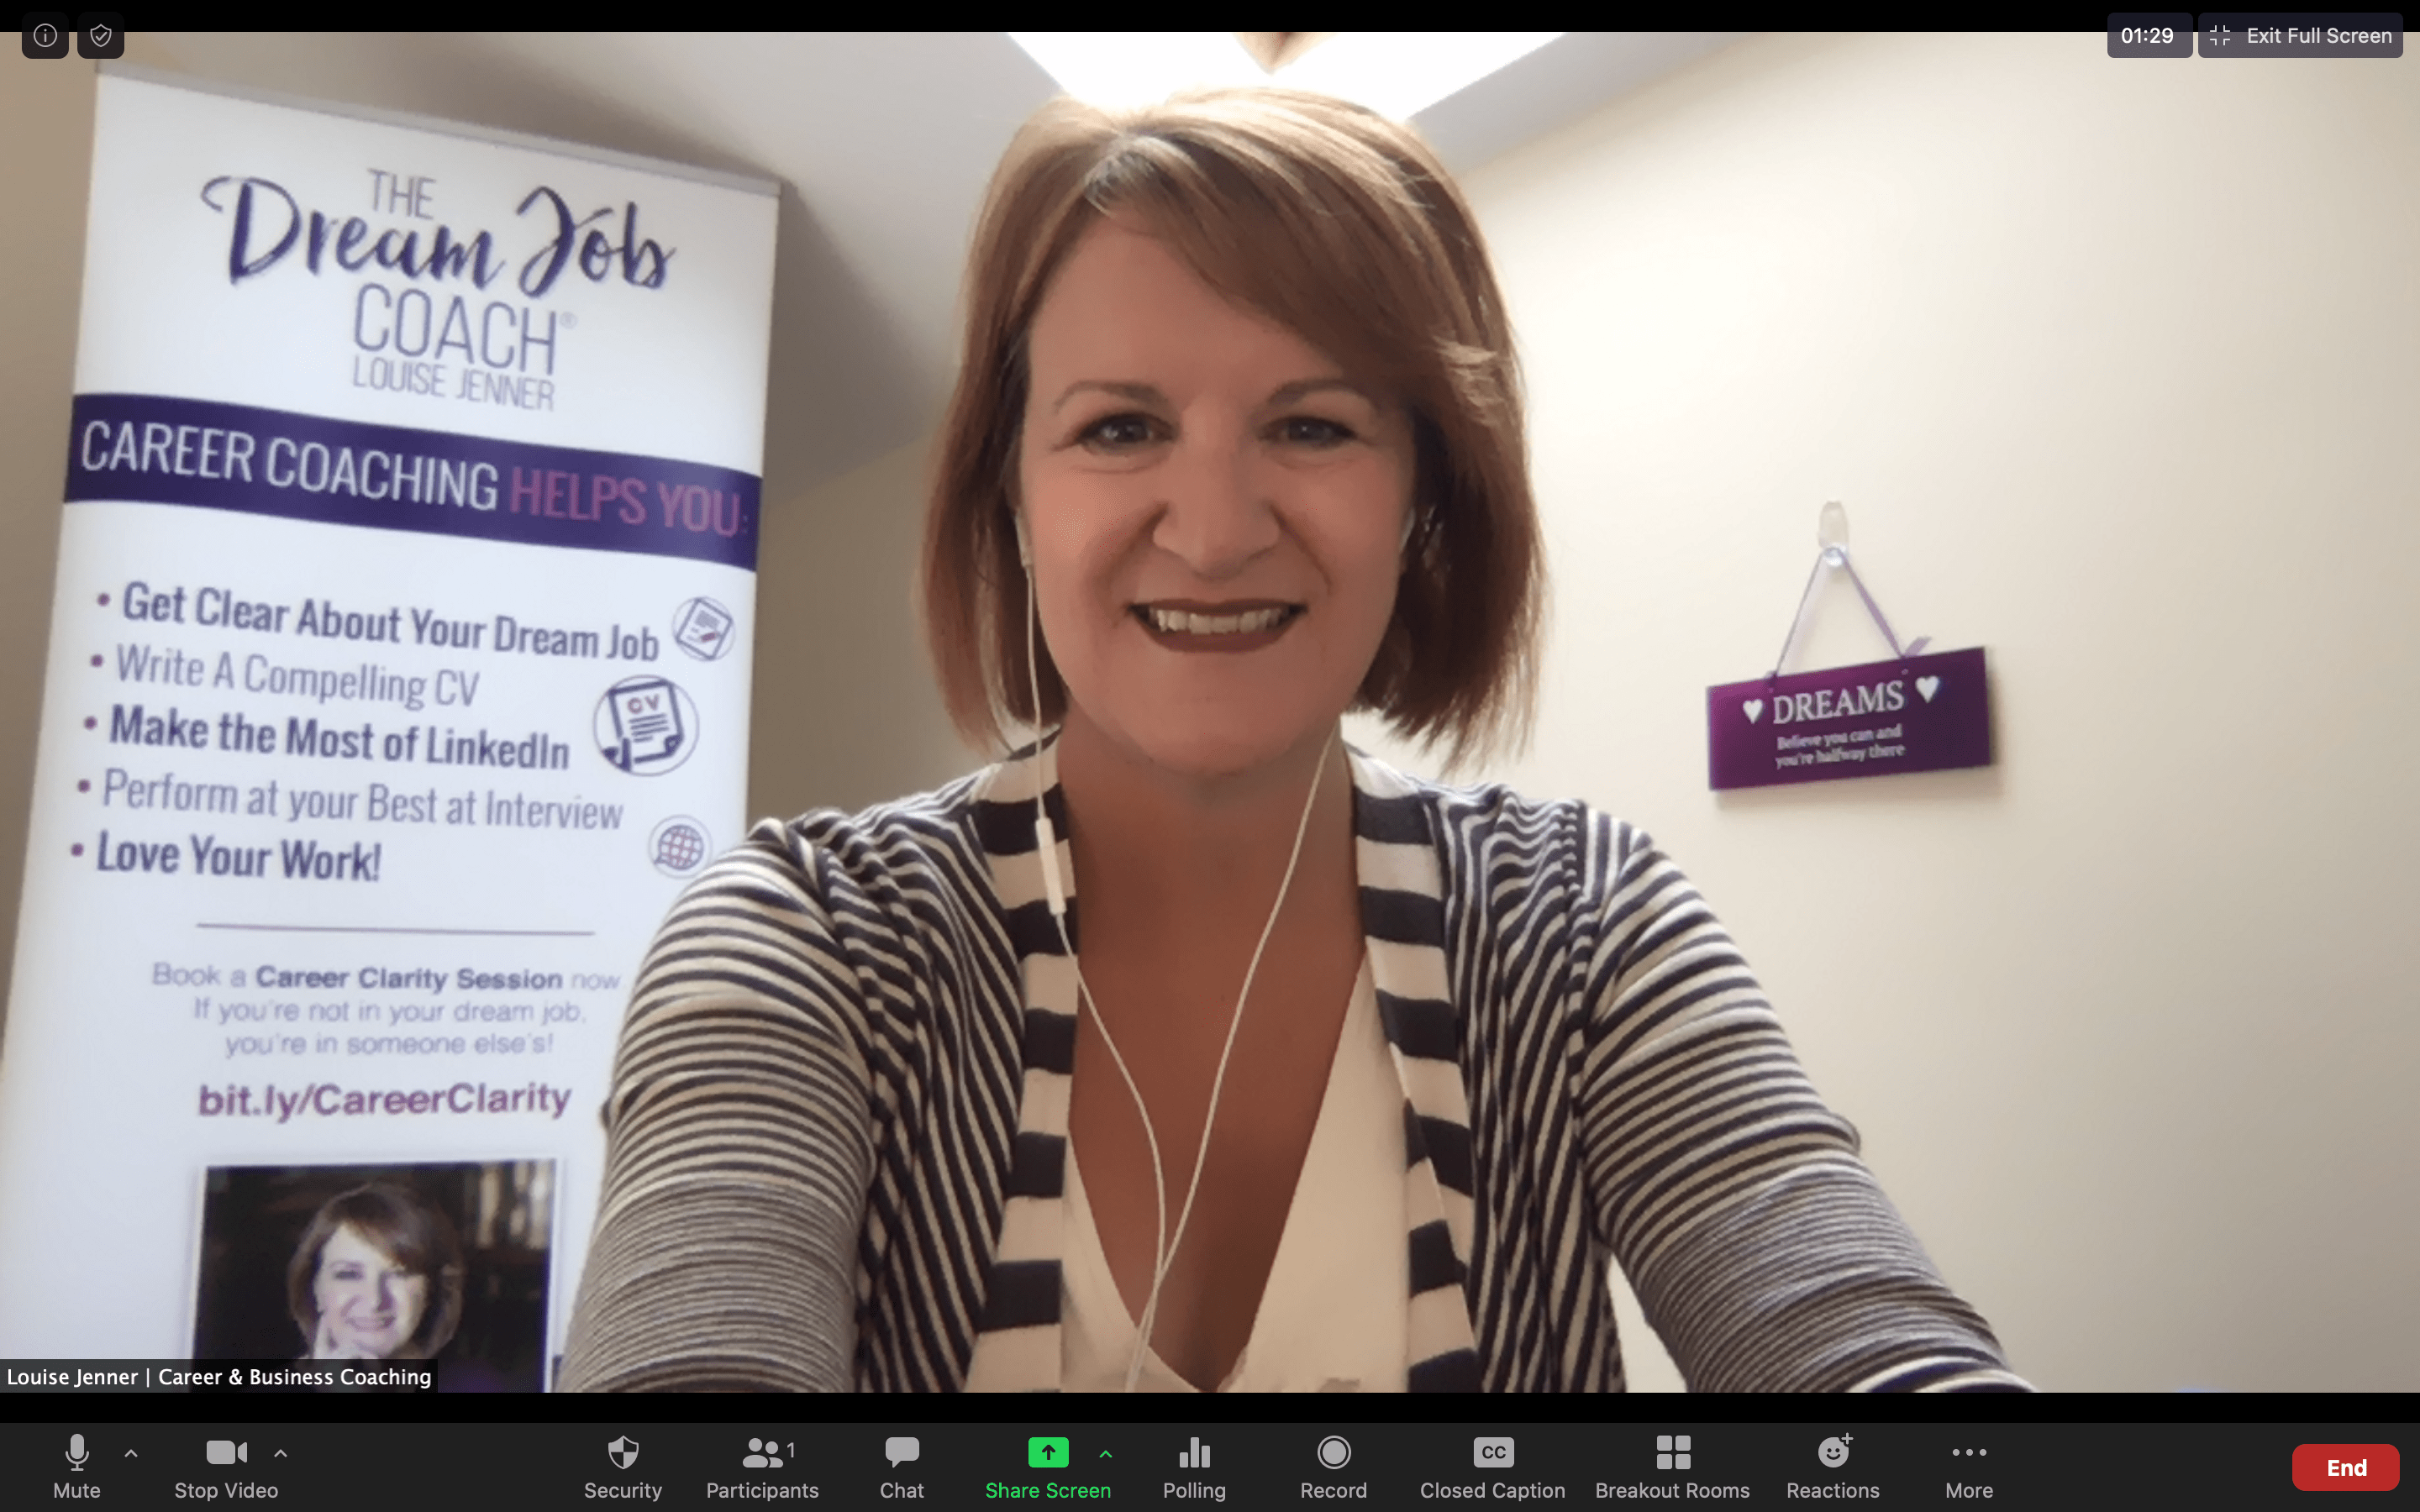 Louise Jenner, The Dream Job Coach, hosting an online event on zoom.